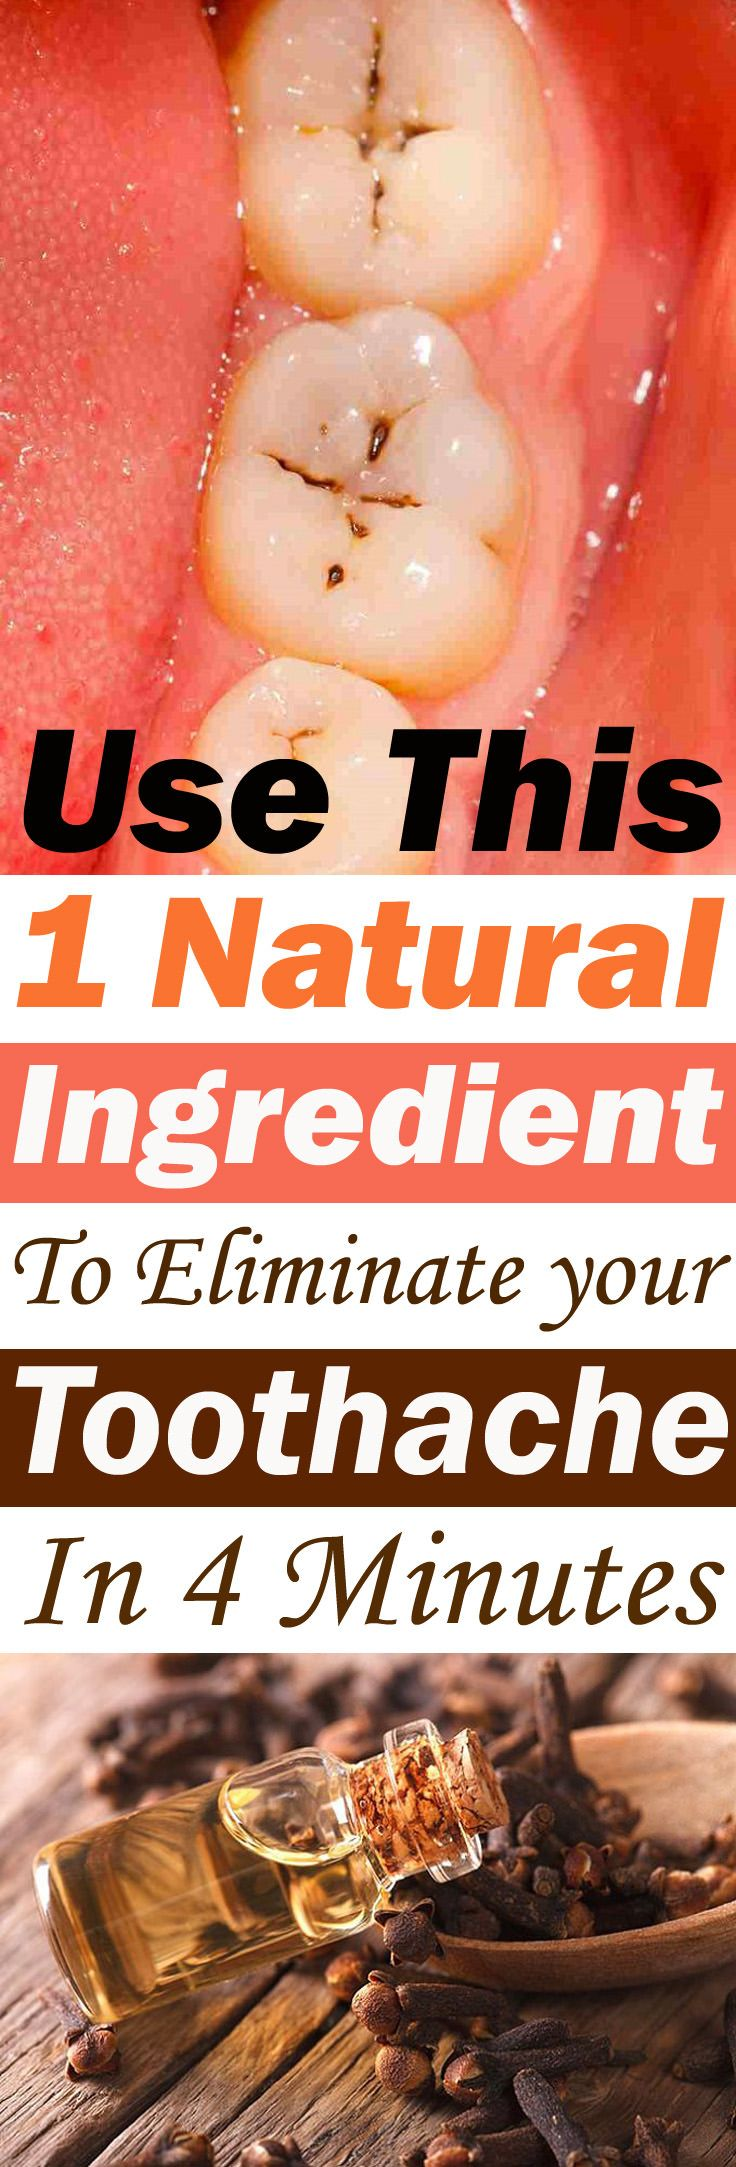 This spice has been used from ages to provide instant relief from a toothache, AND it's proven that it really works. If you want a quick relief must try this!